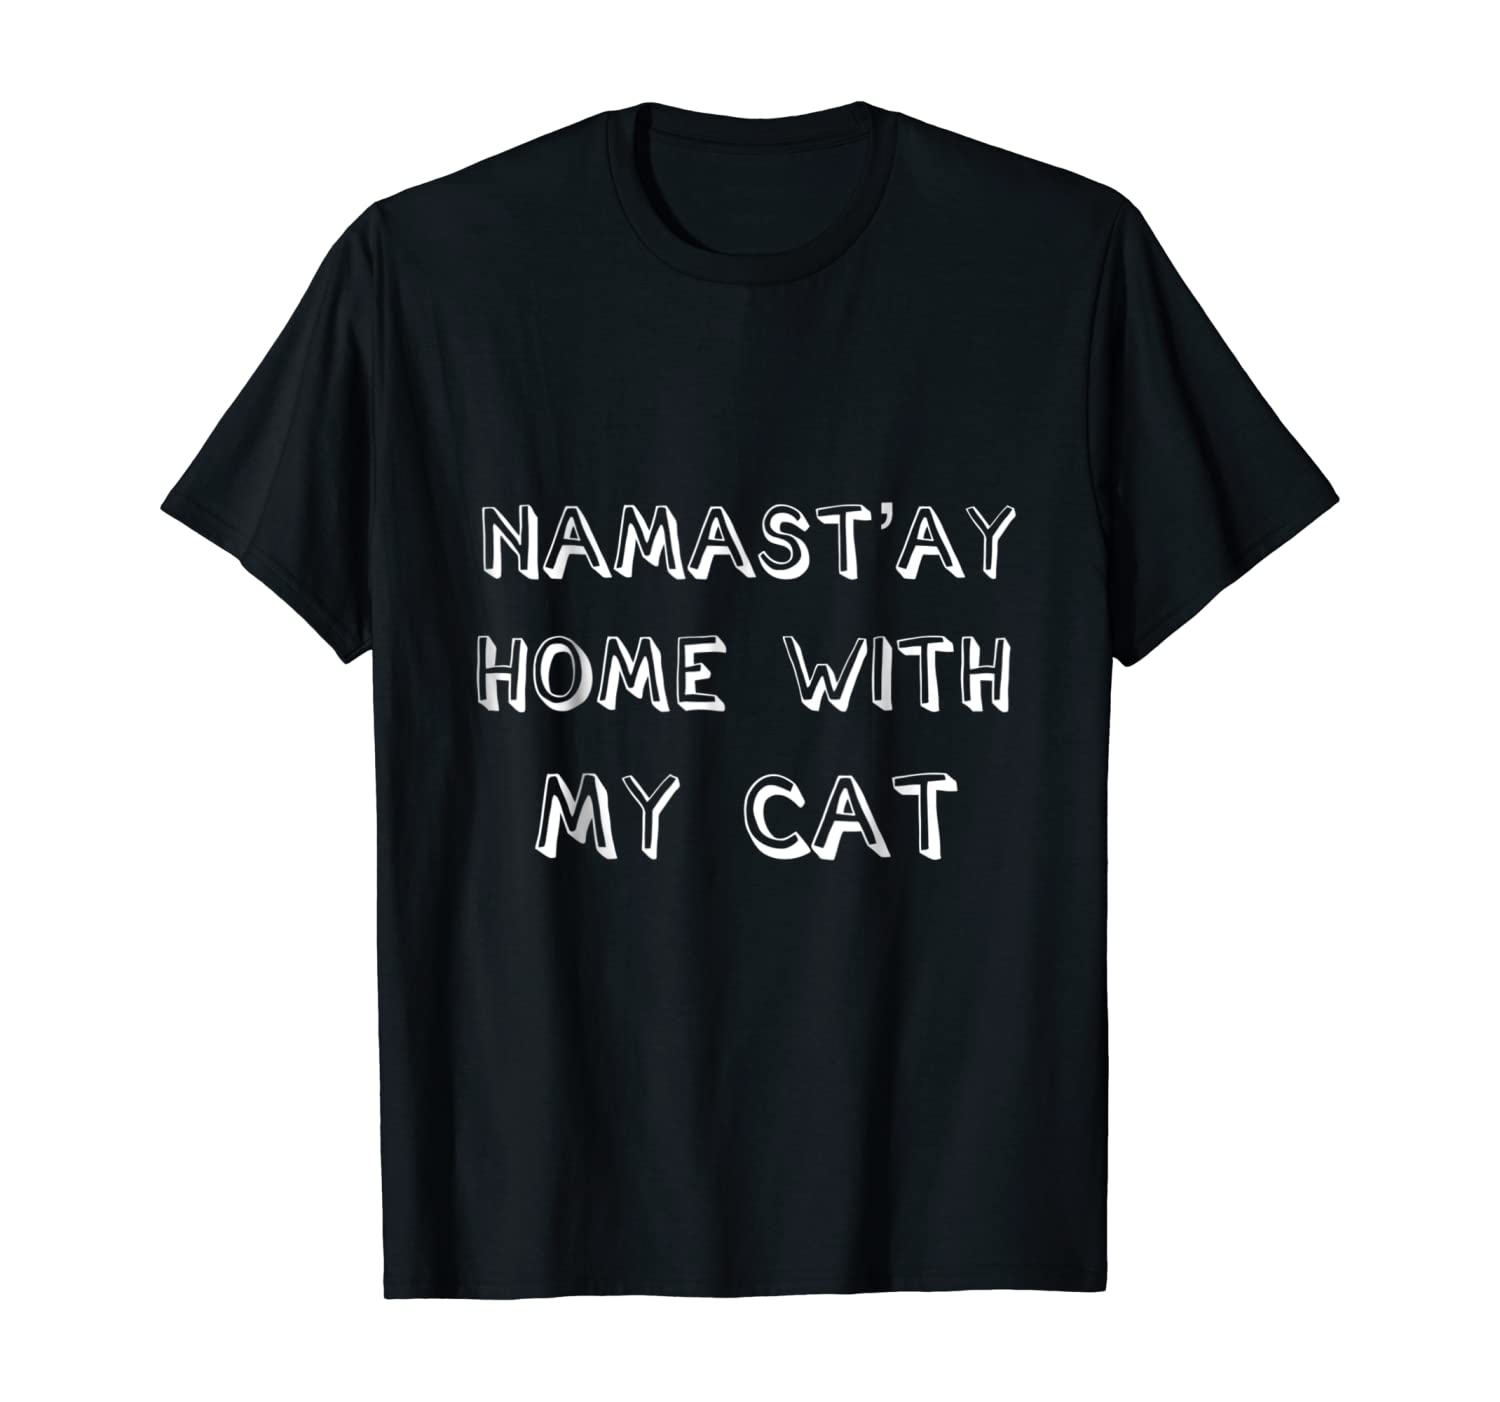 Namast'ay Home With My Cat Funny Yoga Cat Lover